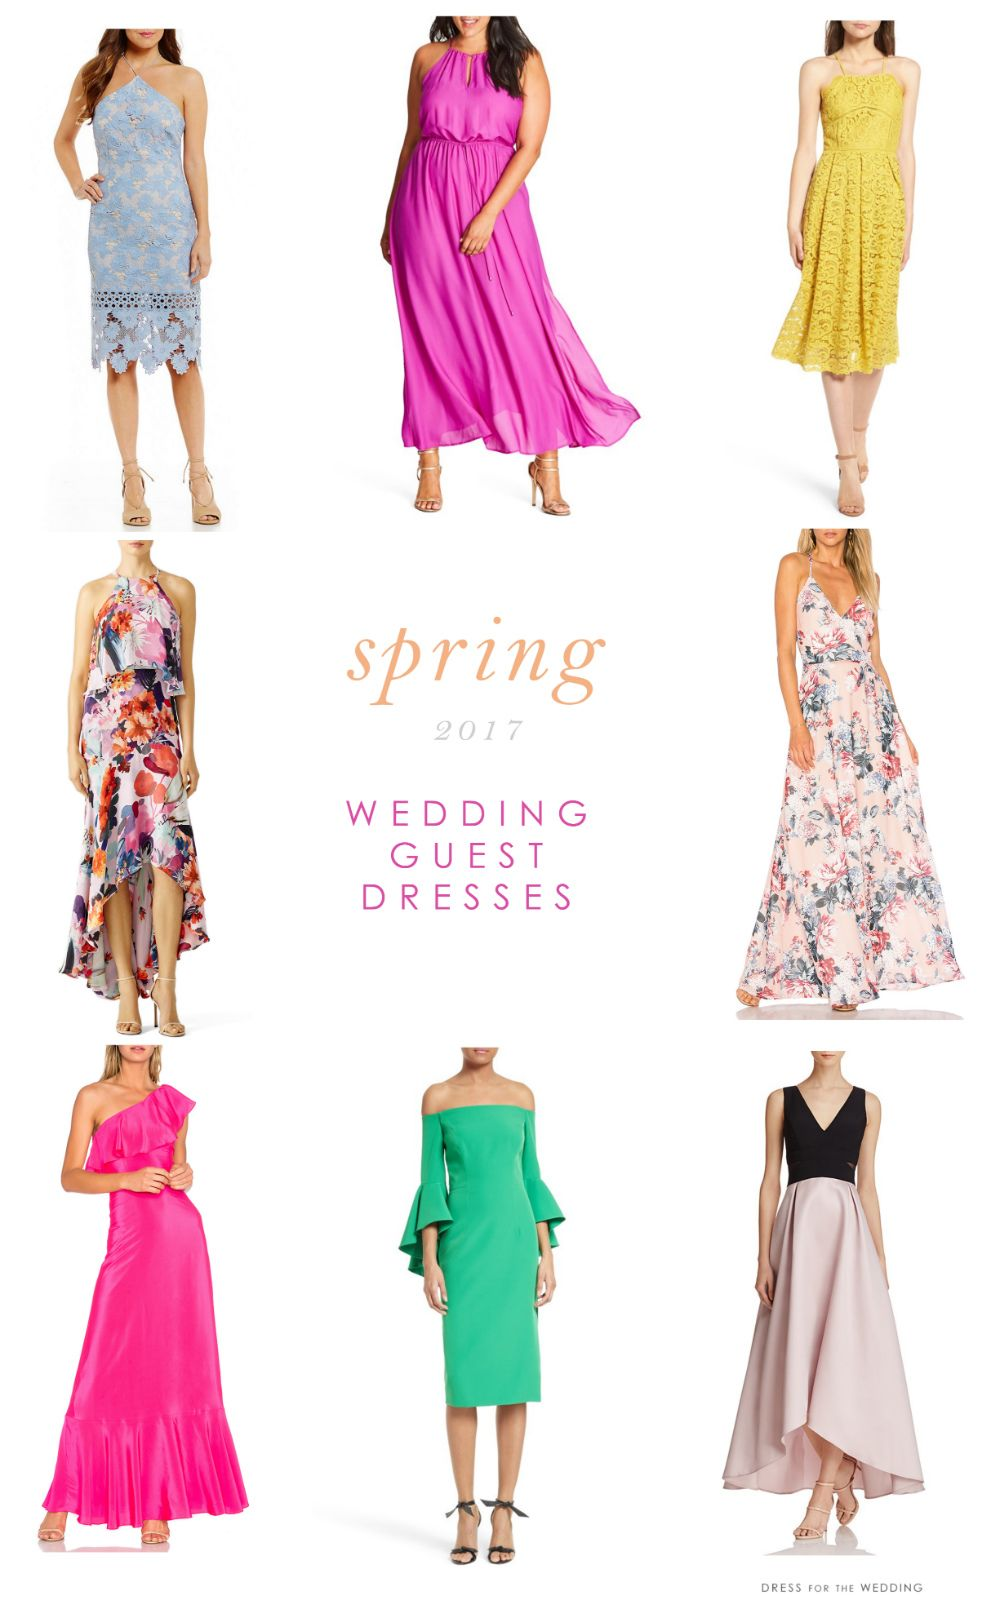 Beautiful Dresses To Wear As A Wedding Guest Dress For The Wedding Spring Wedding Guest Attire Wedding Guest Dress Wedding Attire Guest